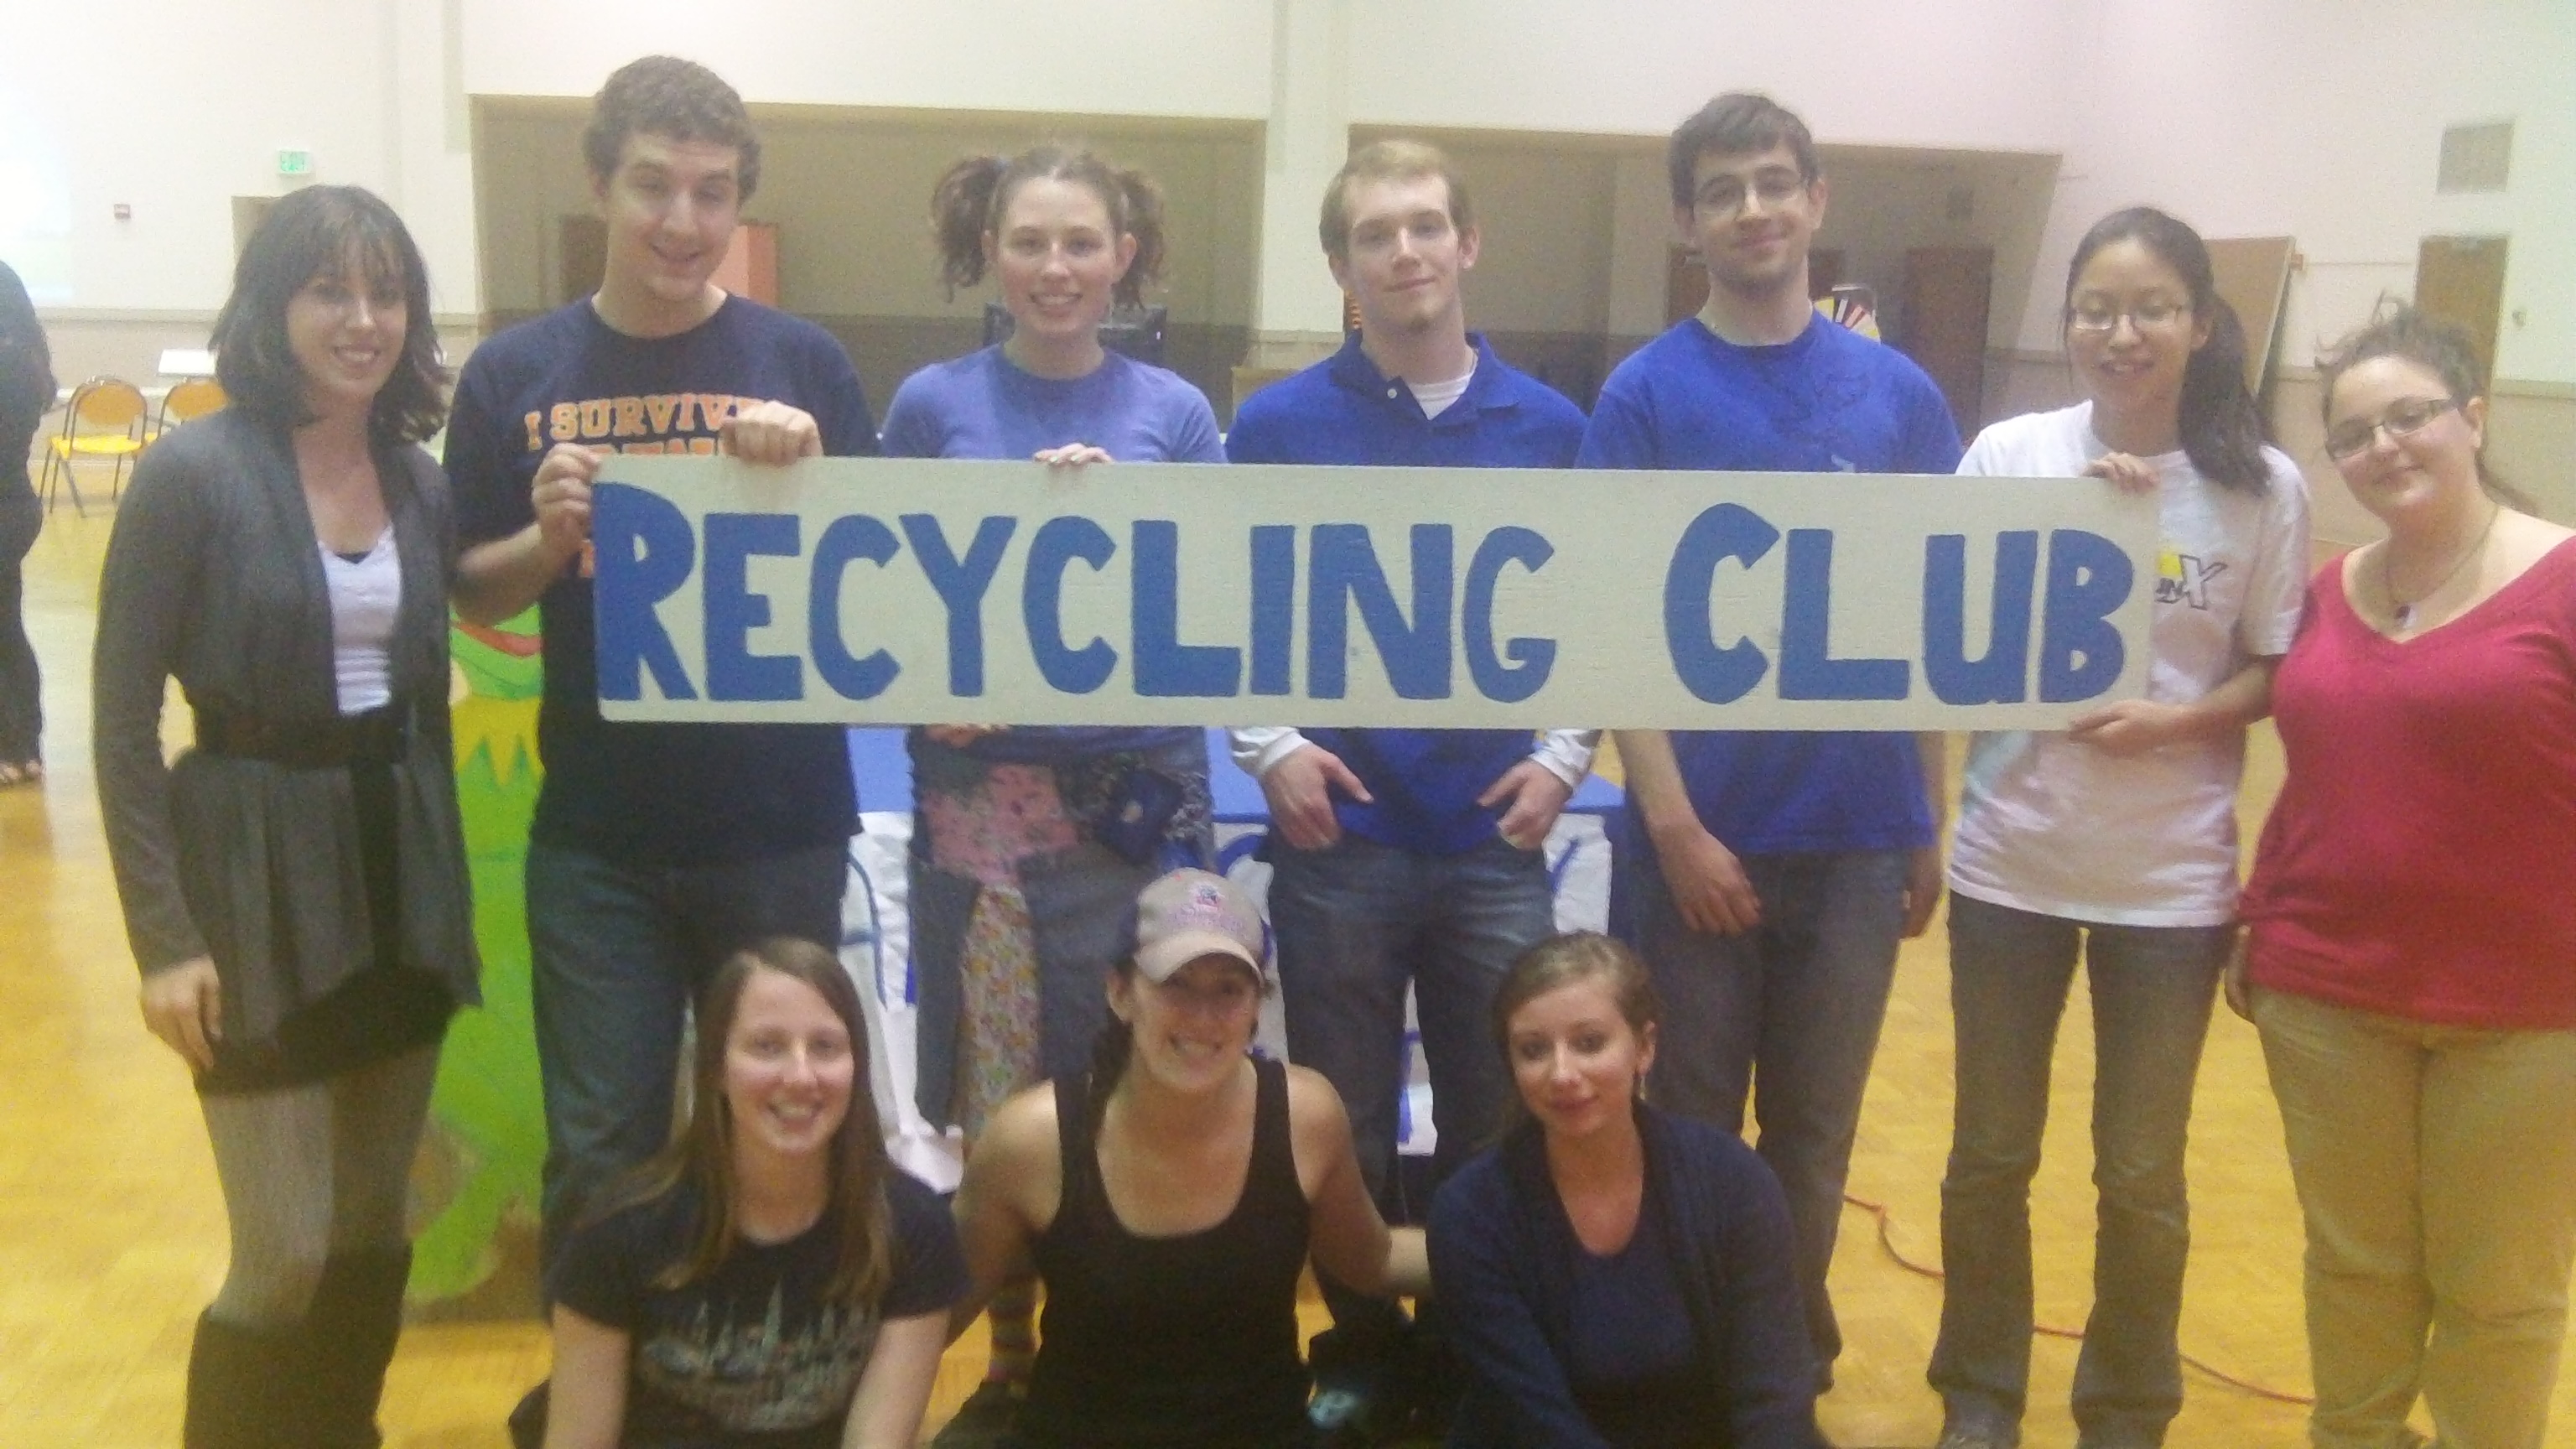 Recycling Club Game Night Teaches Trash Tips